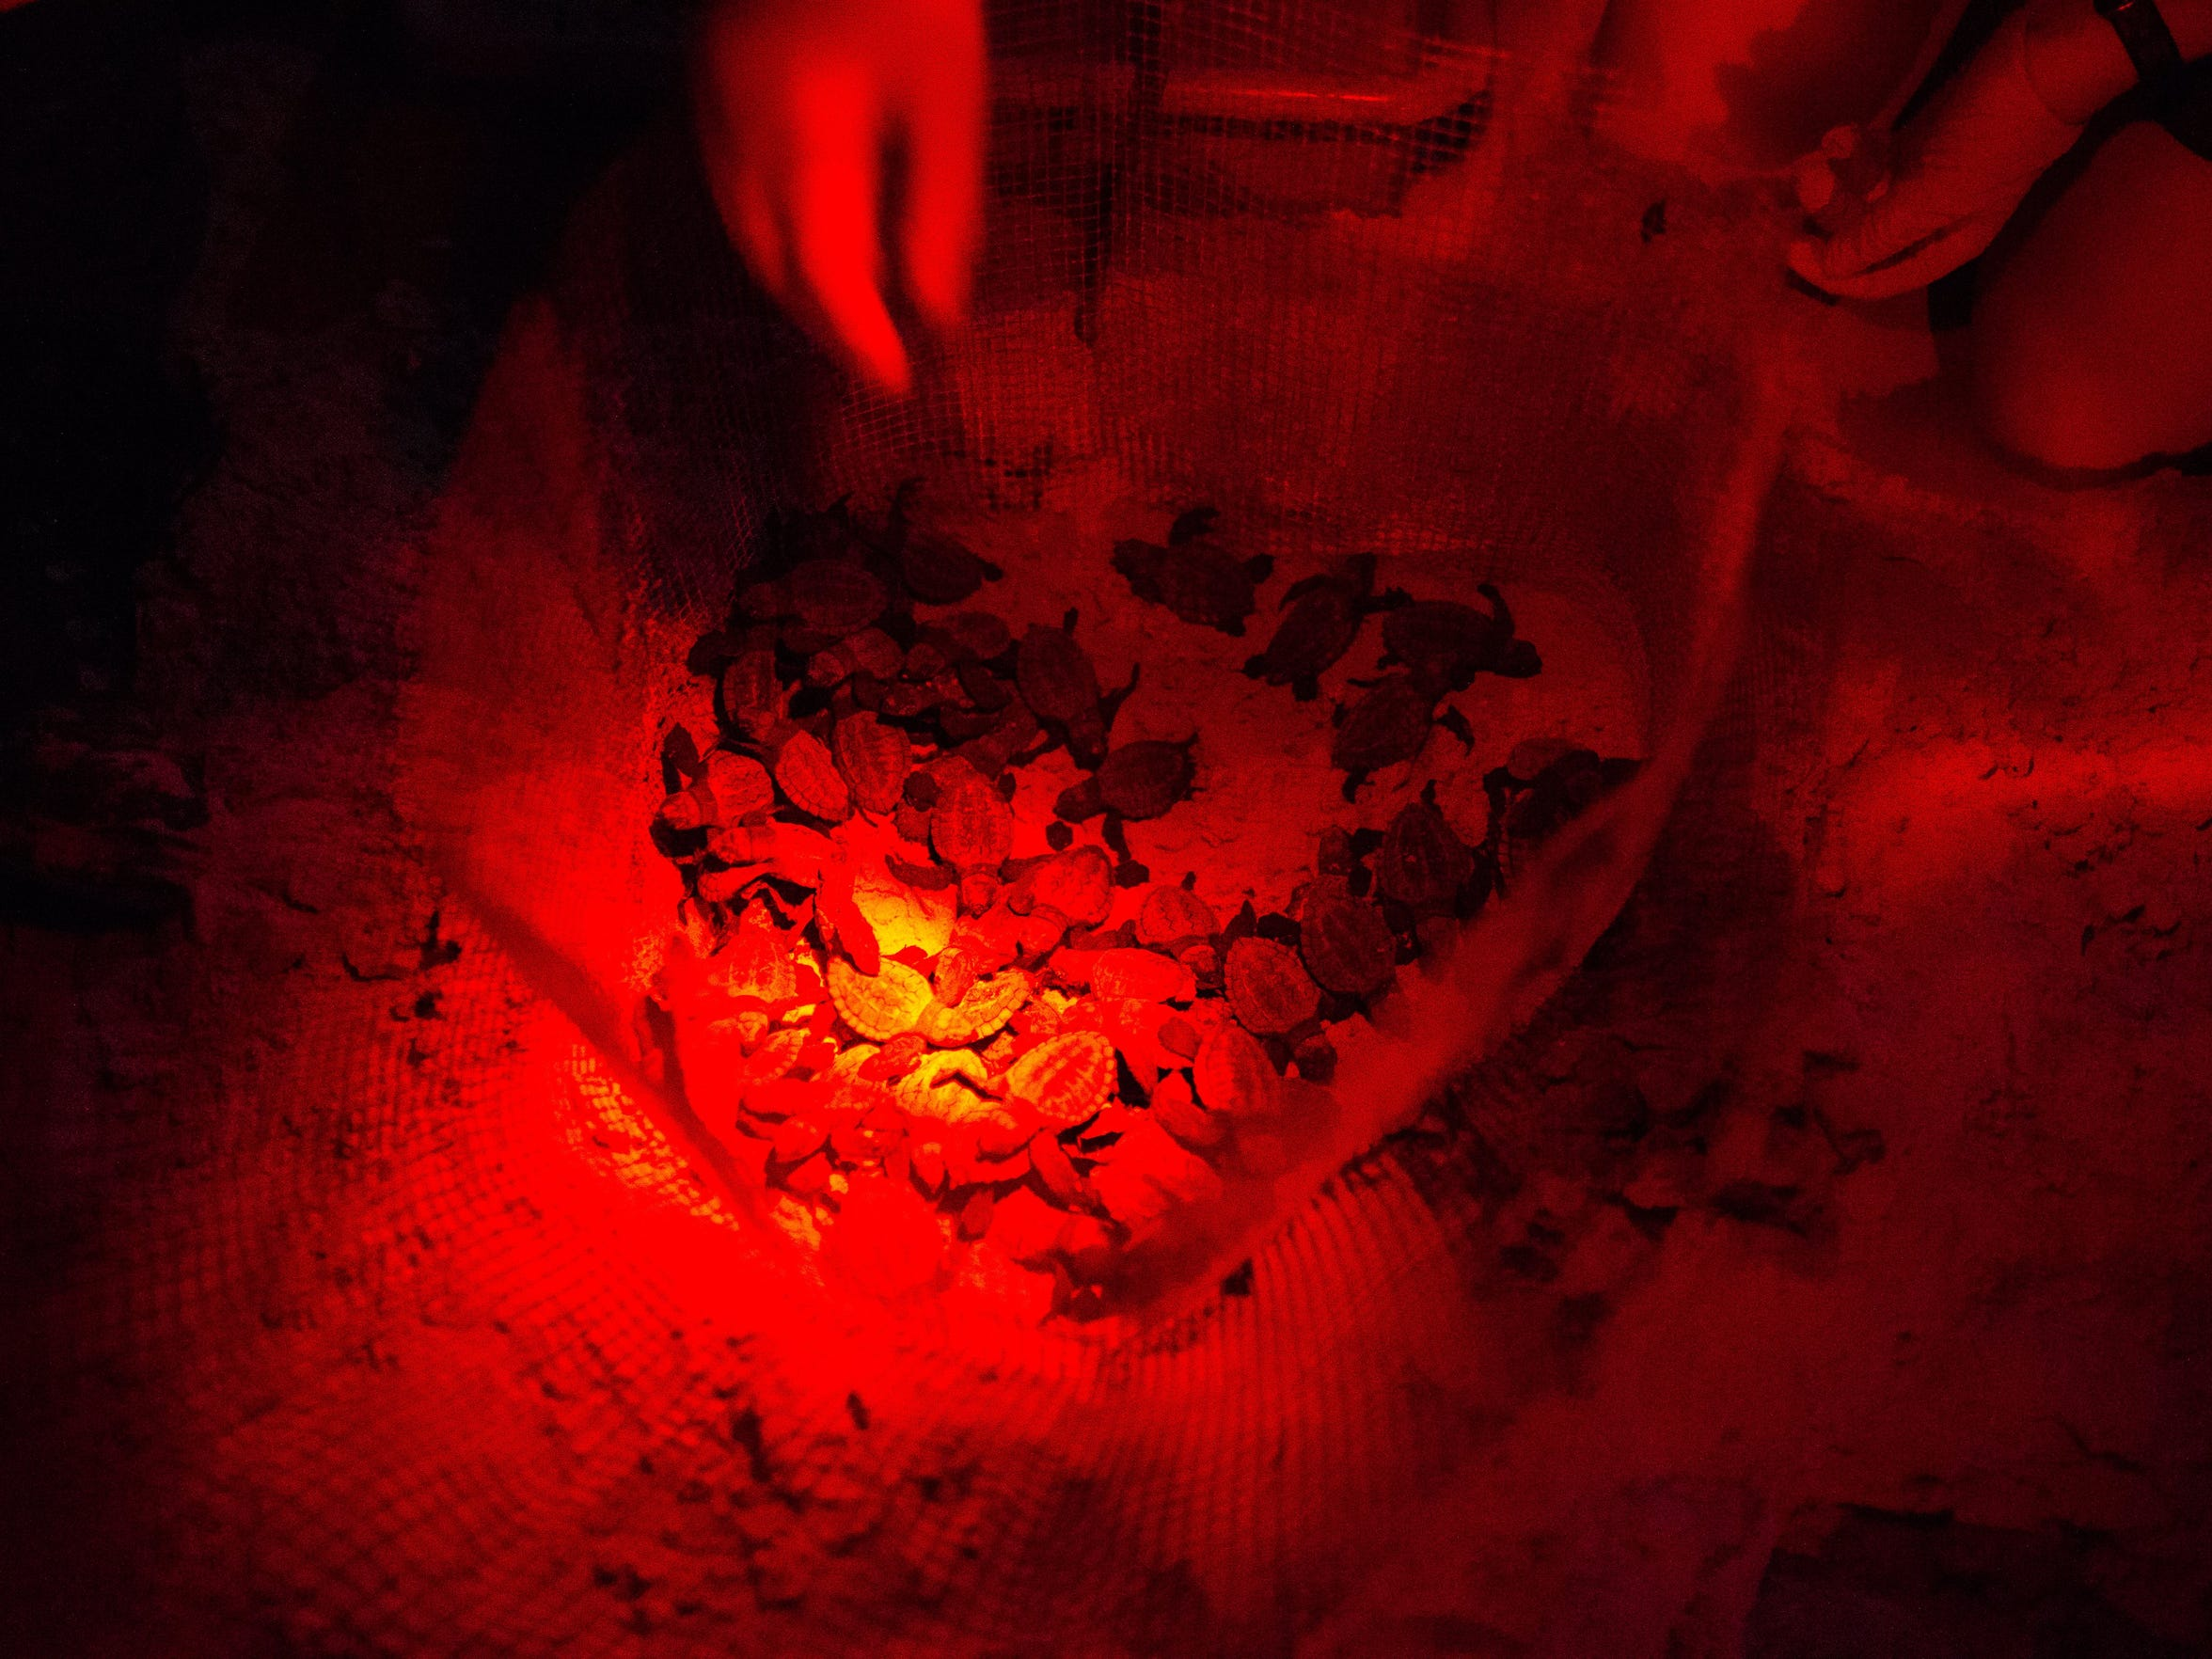 Biological Science Technician Meg Streich uses red headlamps for light counts hatchlings as she removes them from their nest and prepares to release them into the Gulf of Mexico, Monday, July 18, 2016. The cabins last nest hatched 67 Kemp's ridley sea turtle hatchlings.